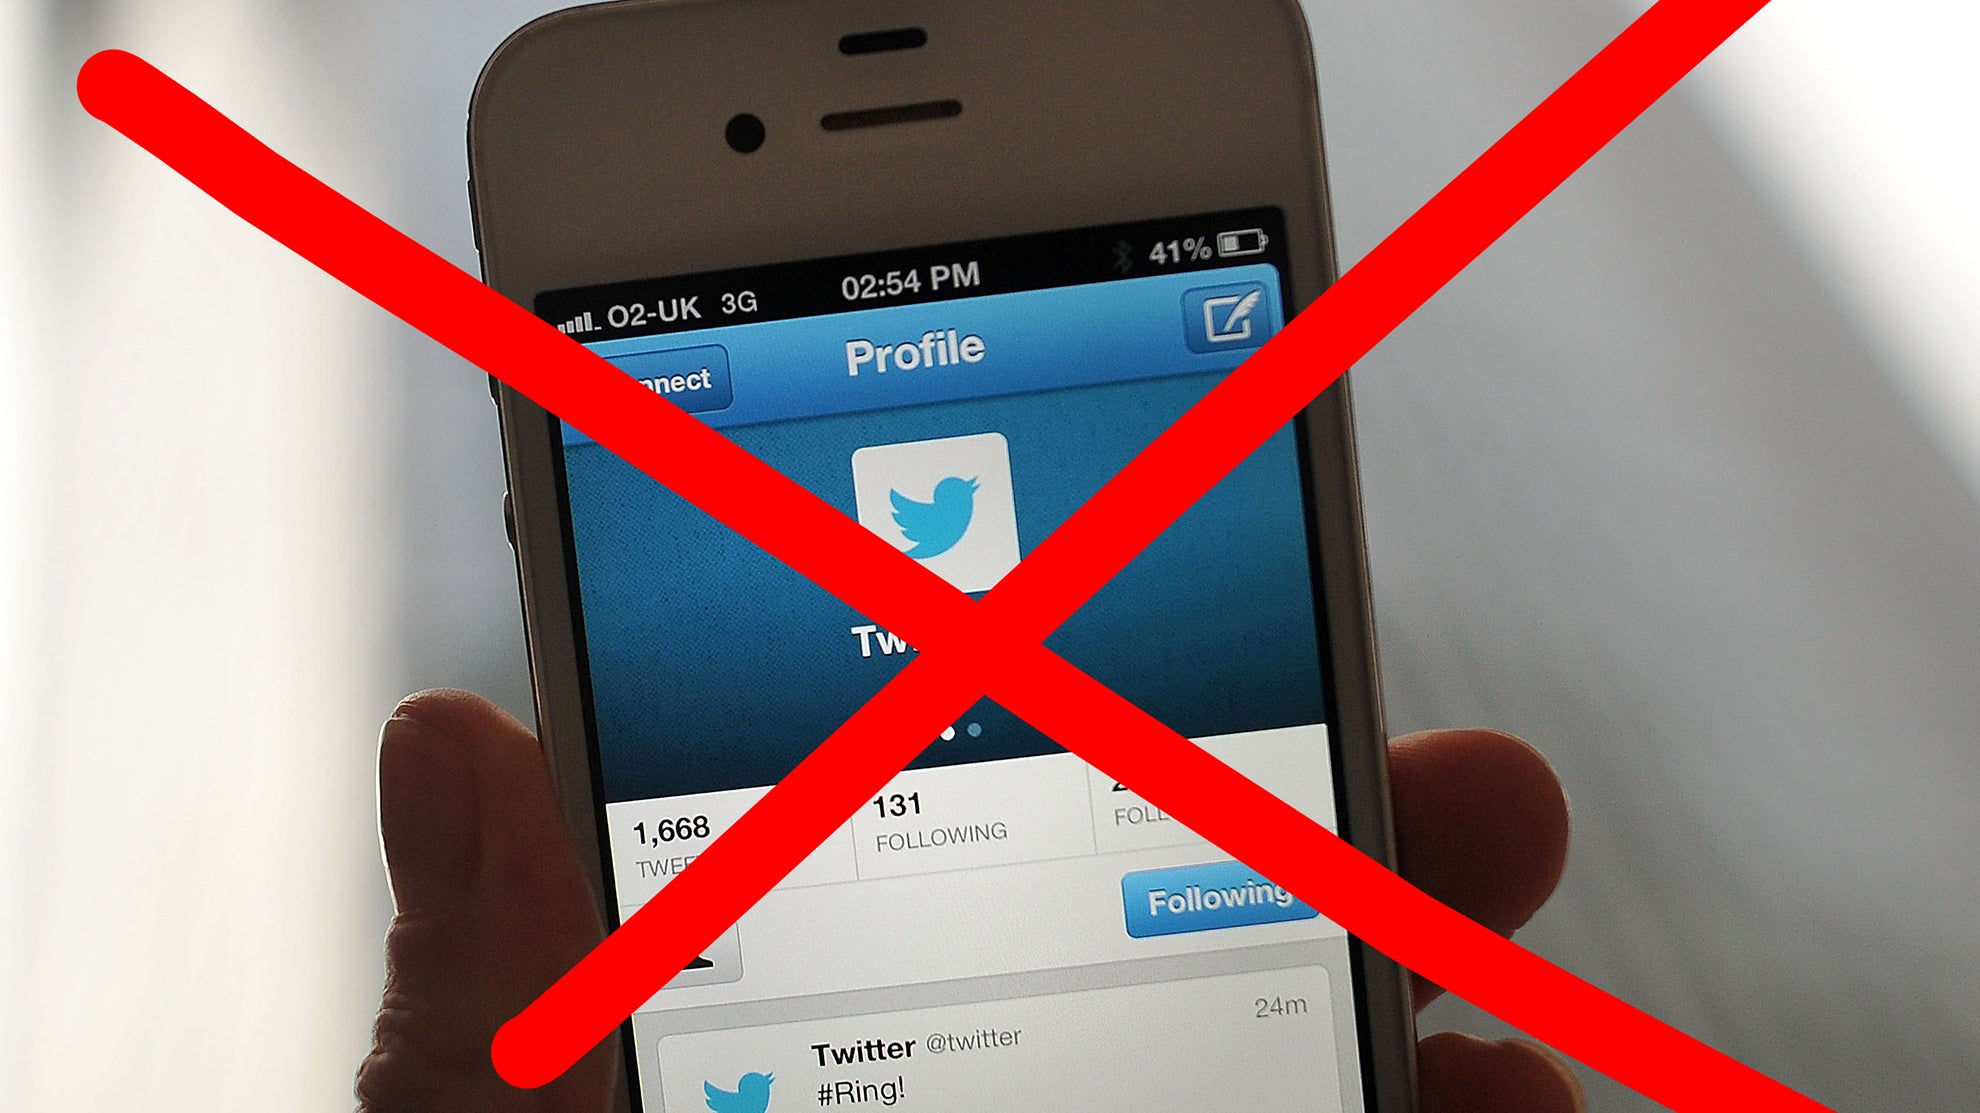 The Easiest Way To Get Banned From Twitter